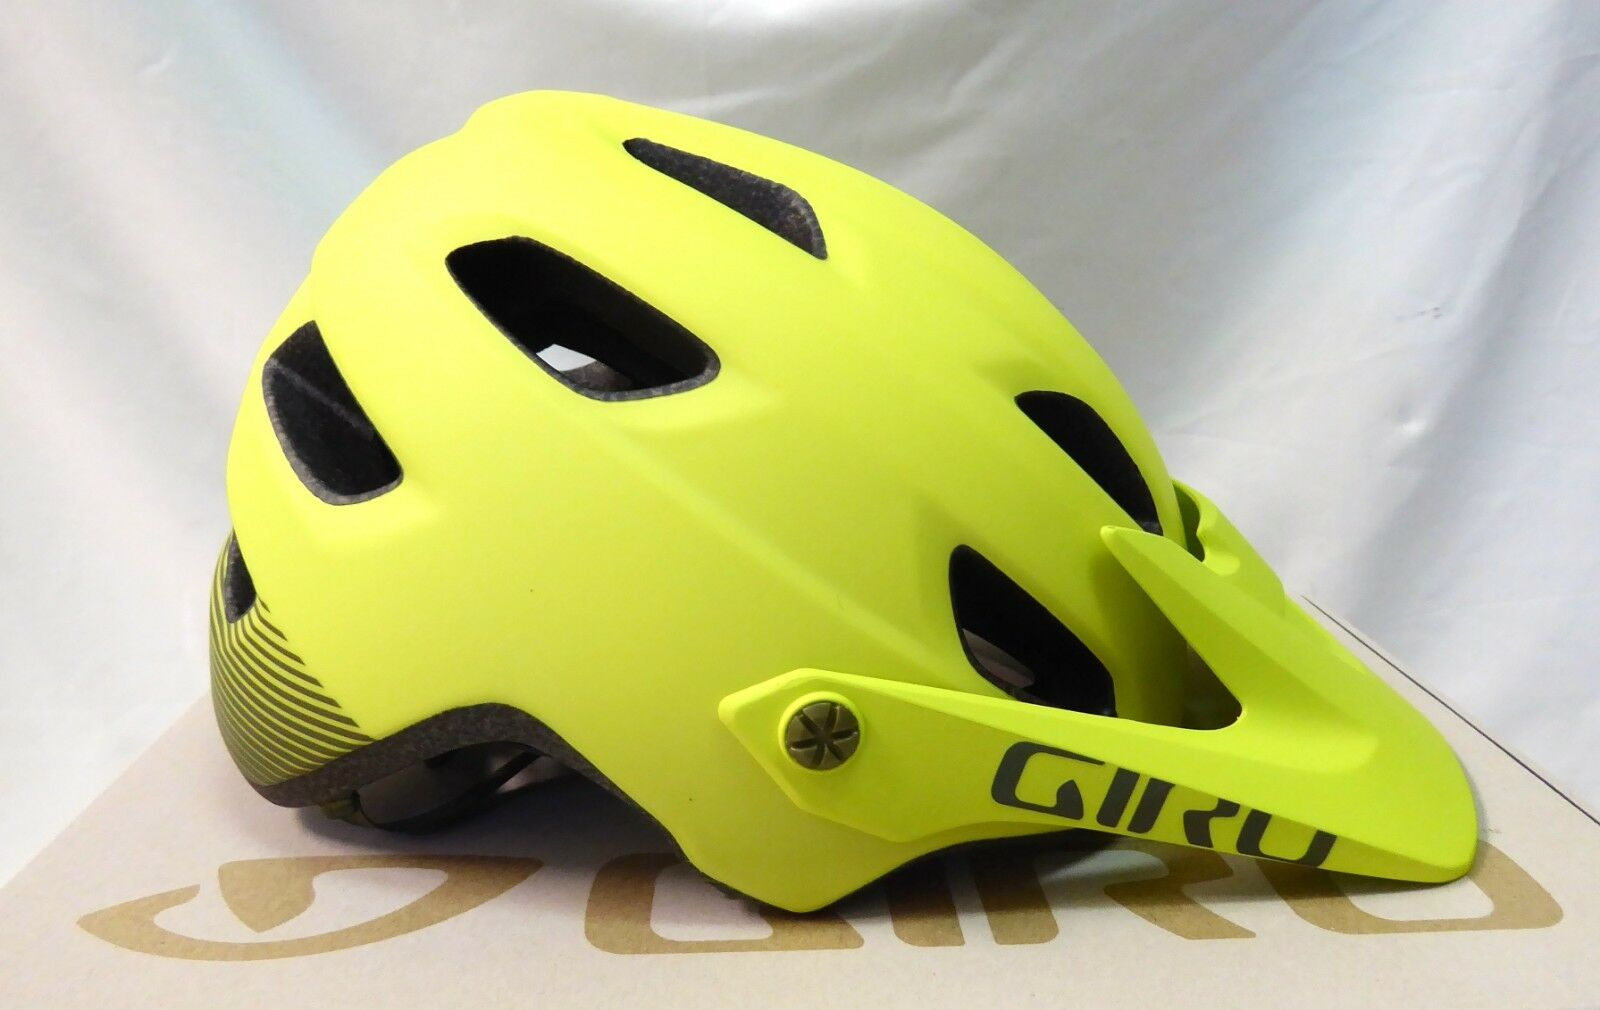 Giro Chronicle MIPS MTB  Cycling Helmet Matte Citron Heatwave Large  best prices and freshest styles